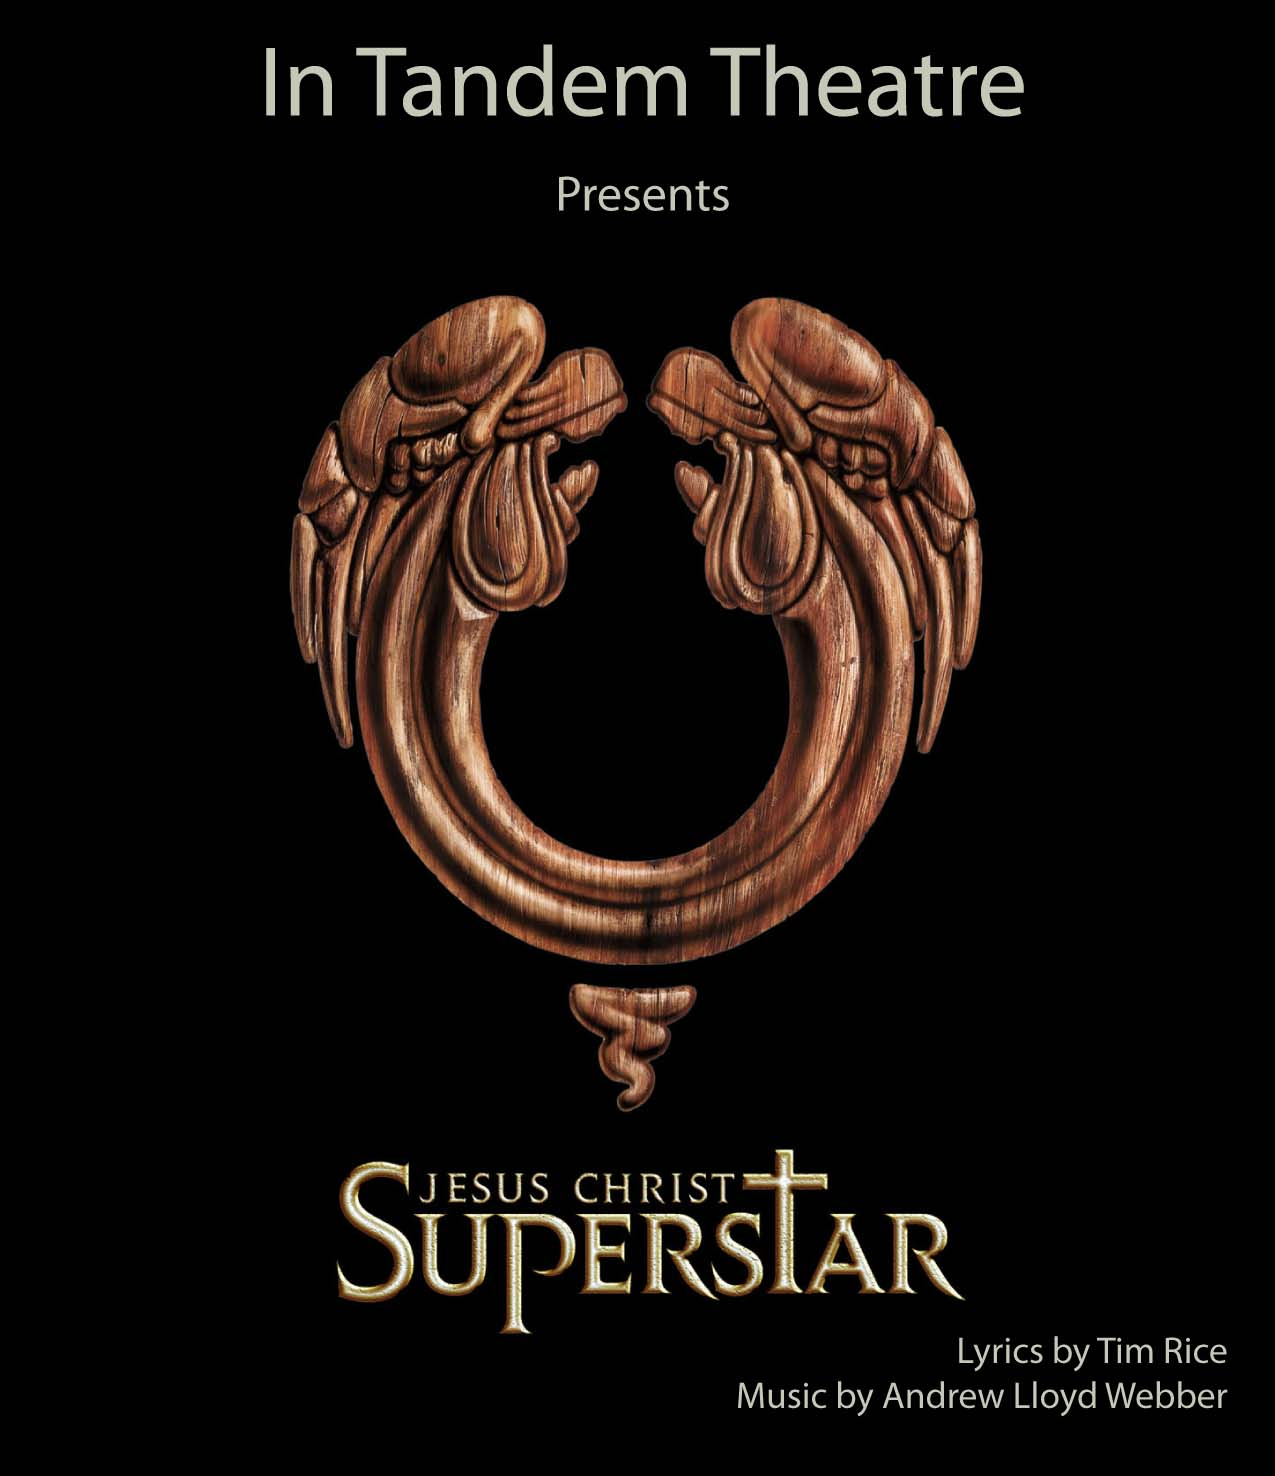 In Tandem Theatre Rocks Out With Concert Version of Jesus Christ Superstar